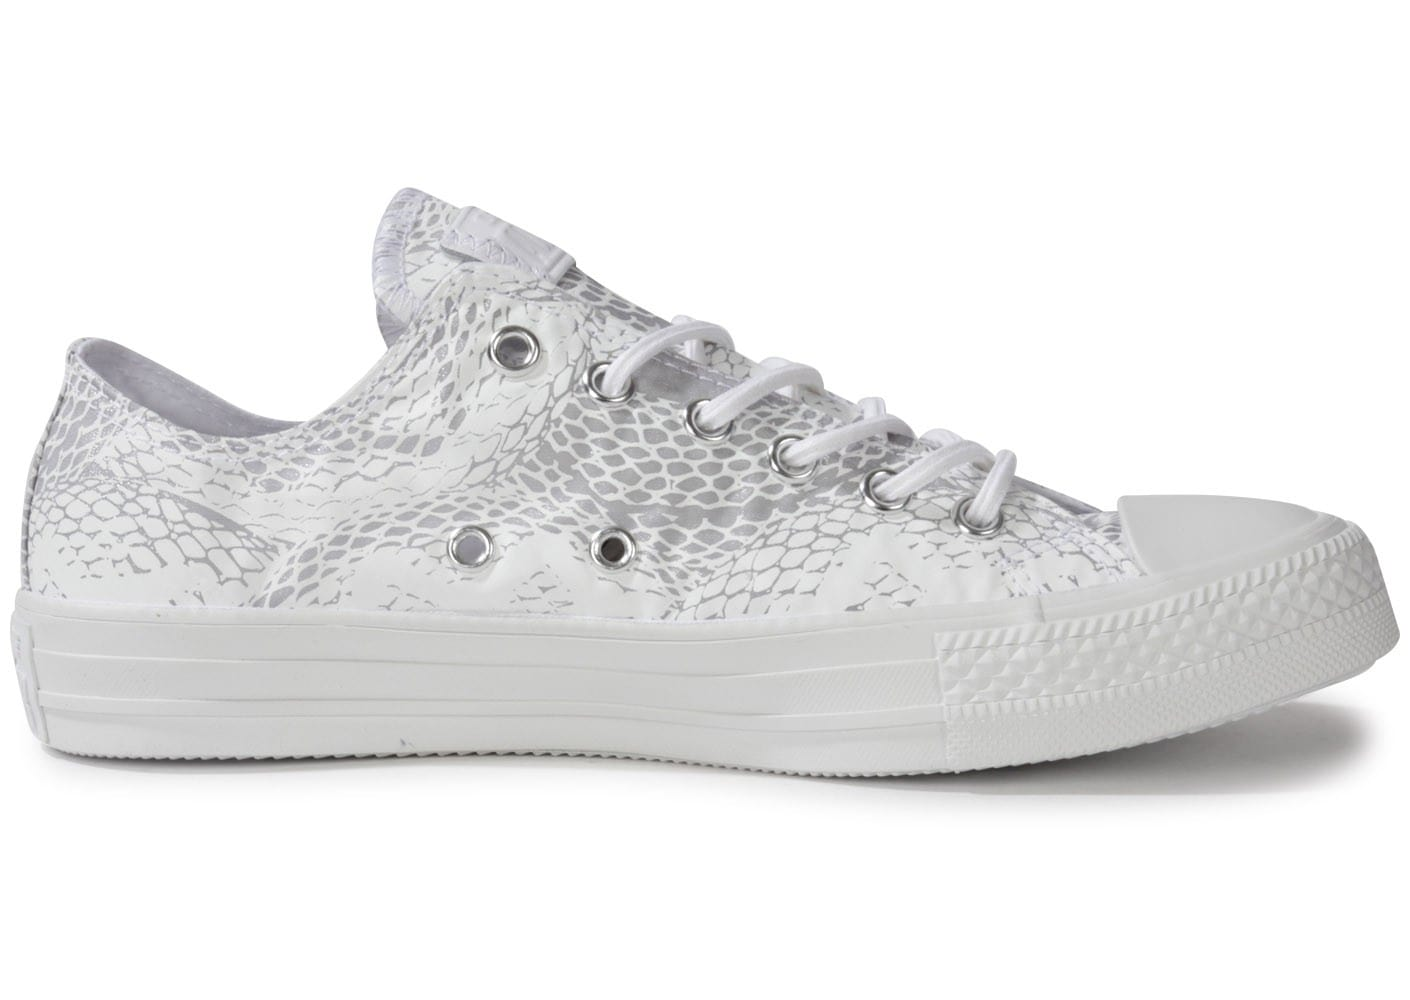 converse chuck taylor all star reptile blanche chaussures chaussures chausport. Black Bedroom Furniture Sets. Home Design Ideas